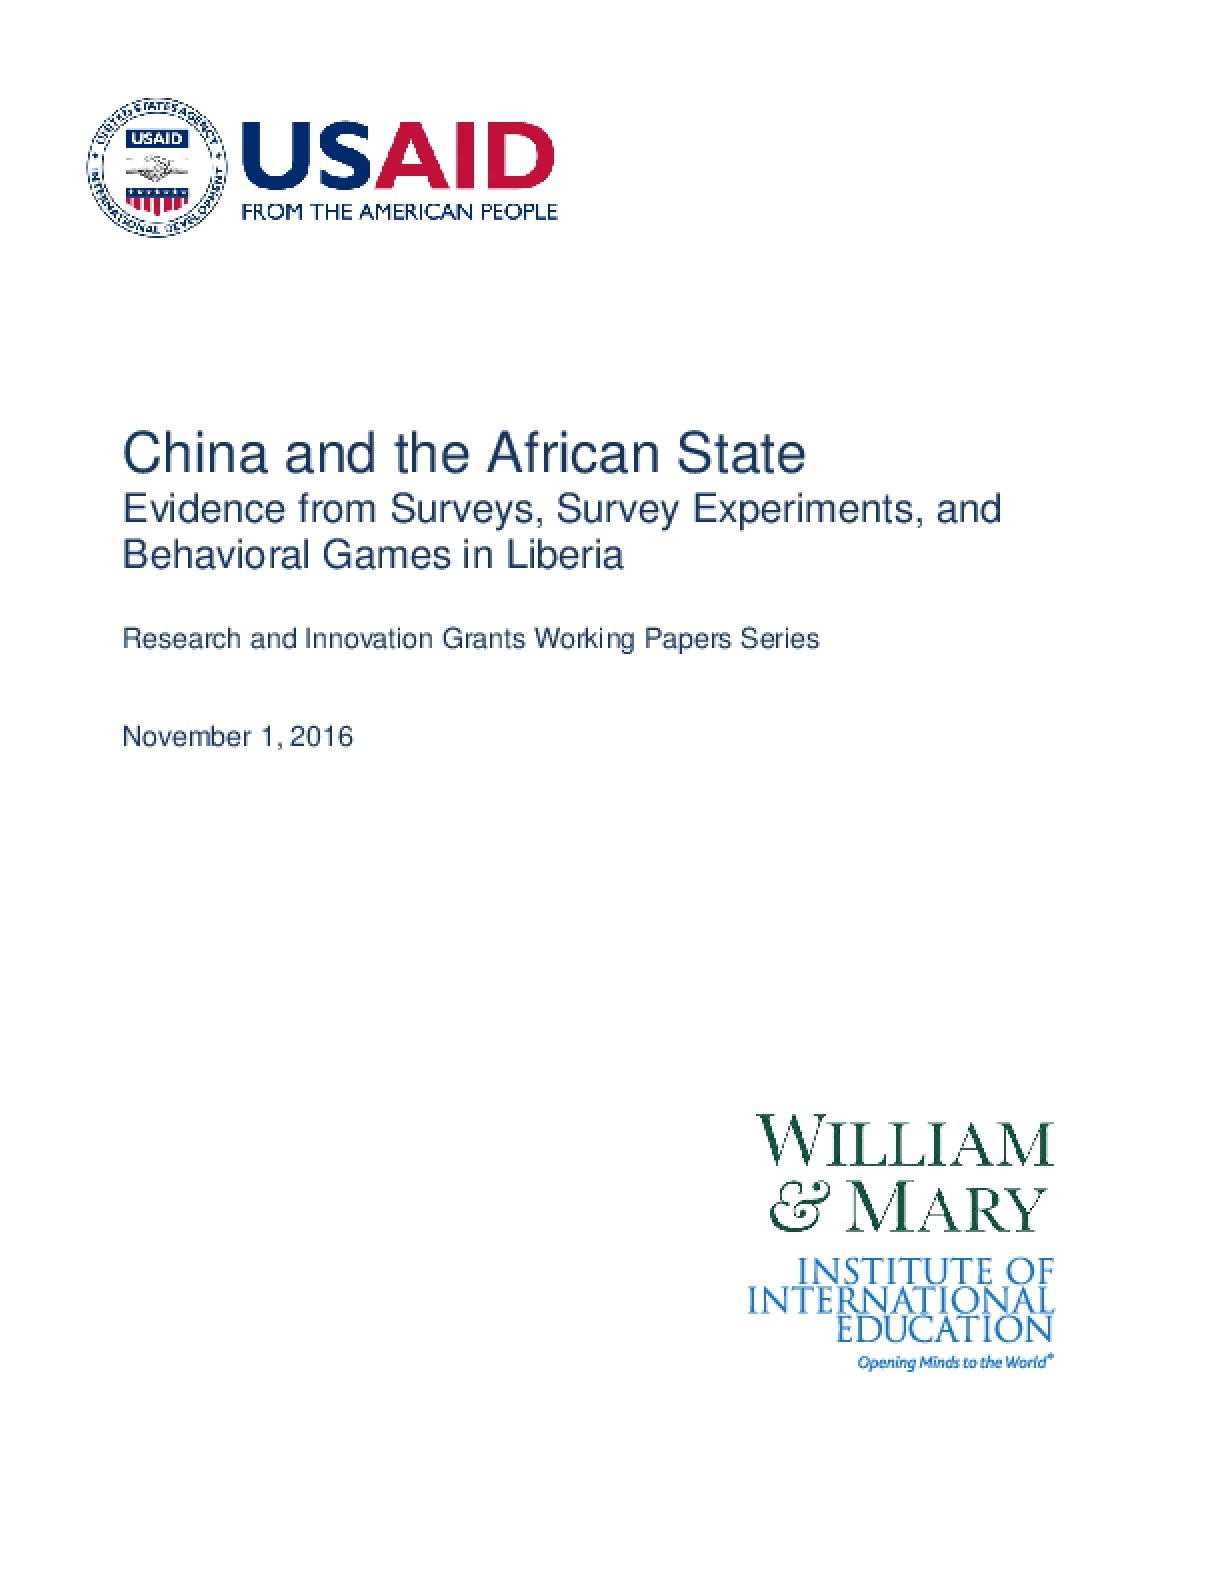 China and the African State: Evidence from Surveys, Survey Experiments, and Behavioral Games in Liberia